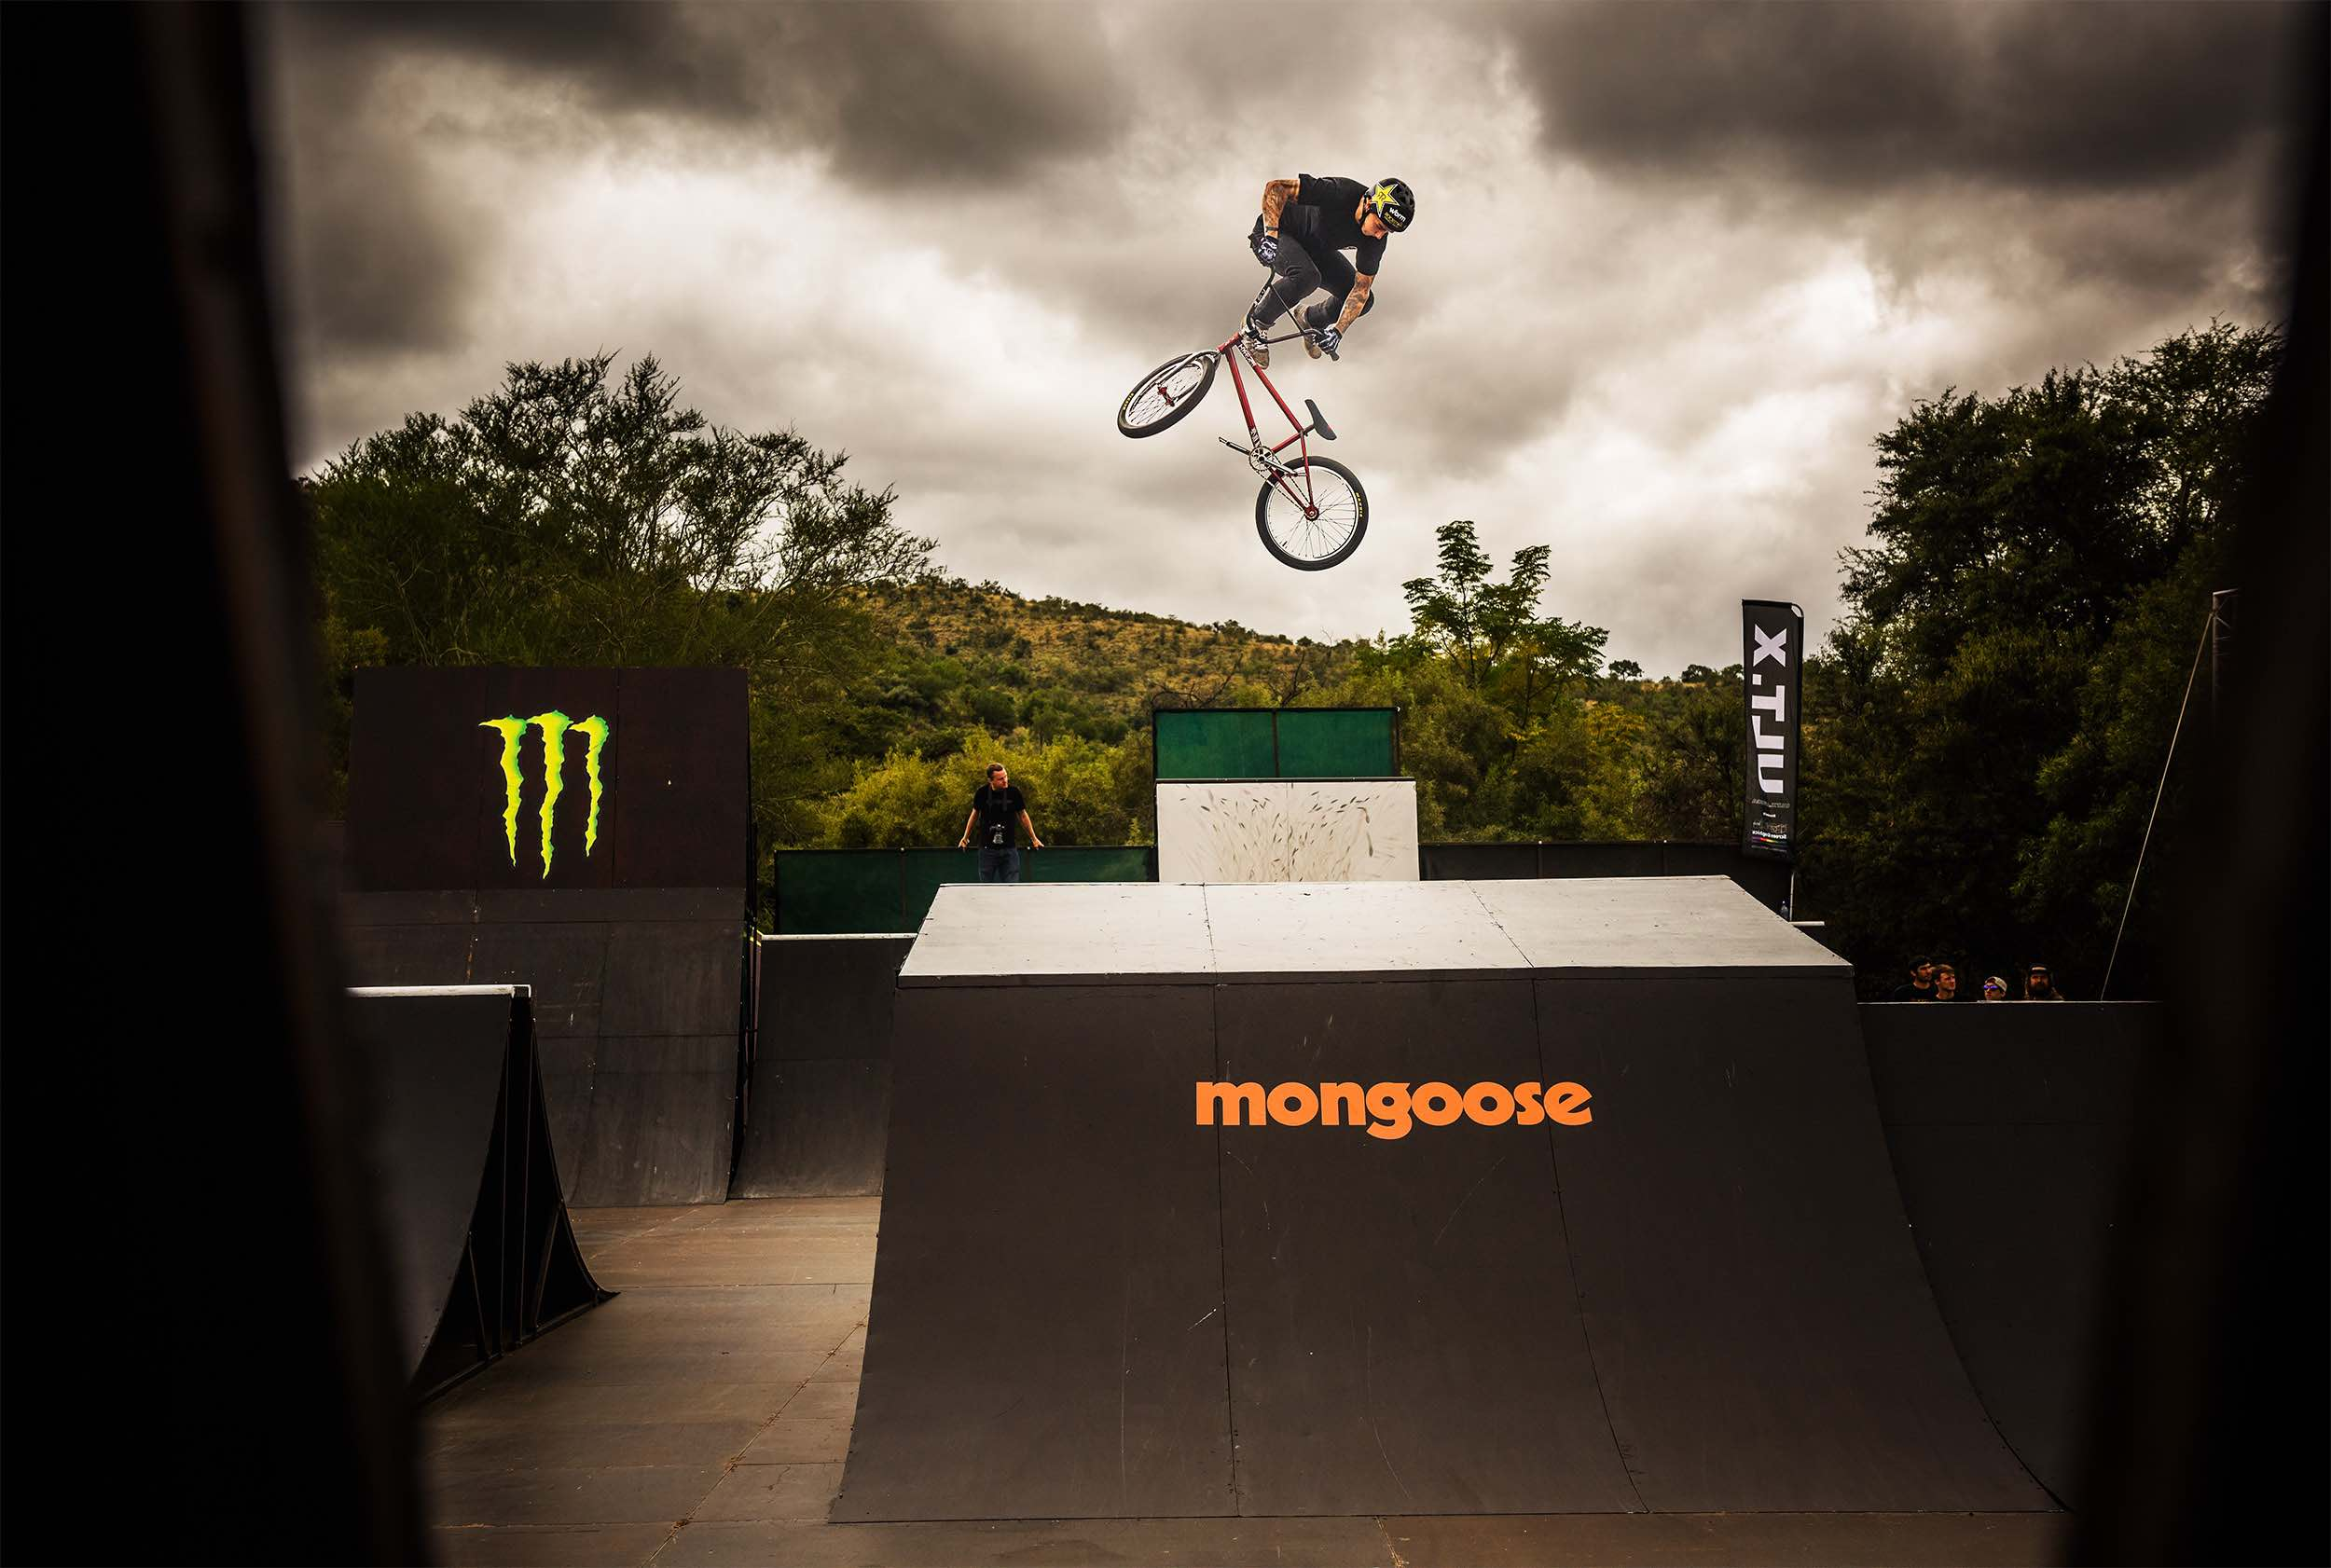 Logan Martin competing in the BMX contest at ULT.X 2018